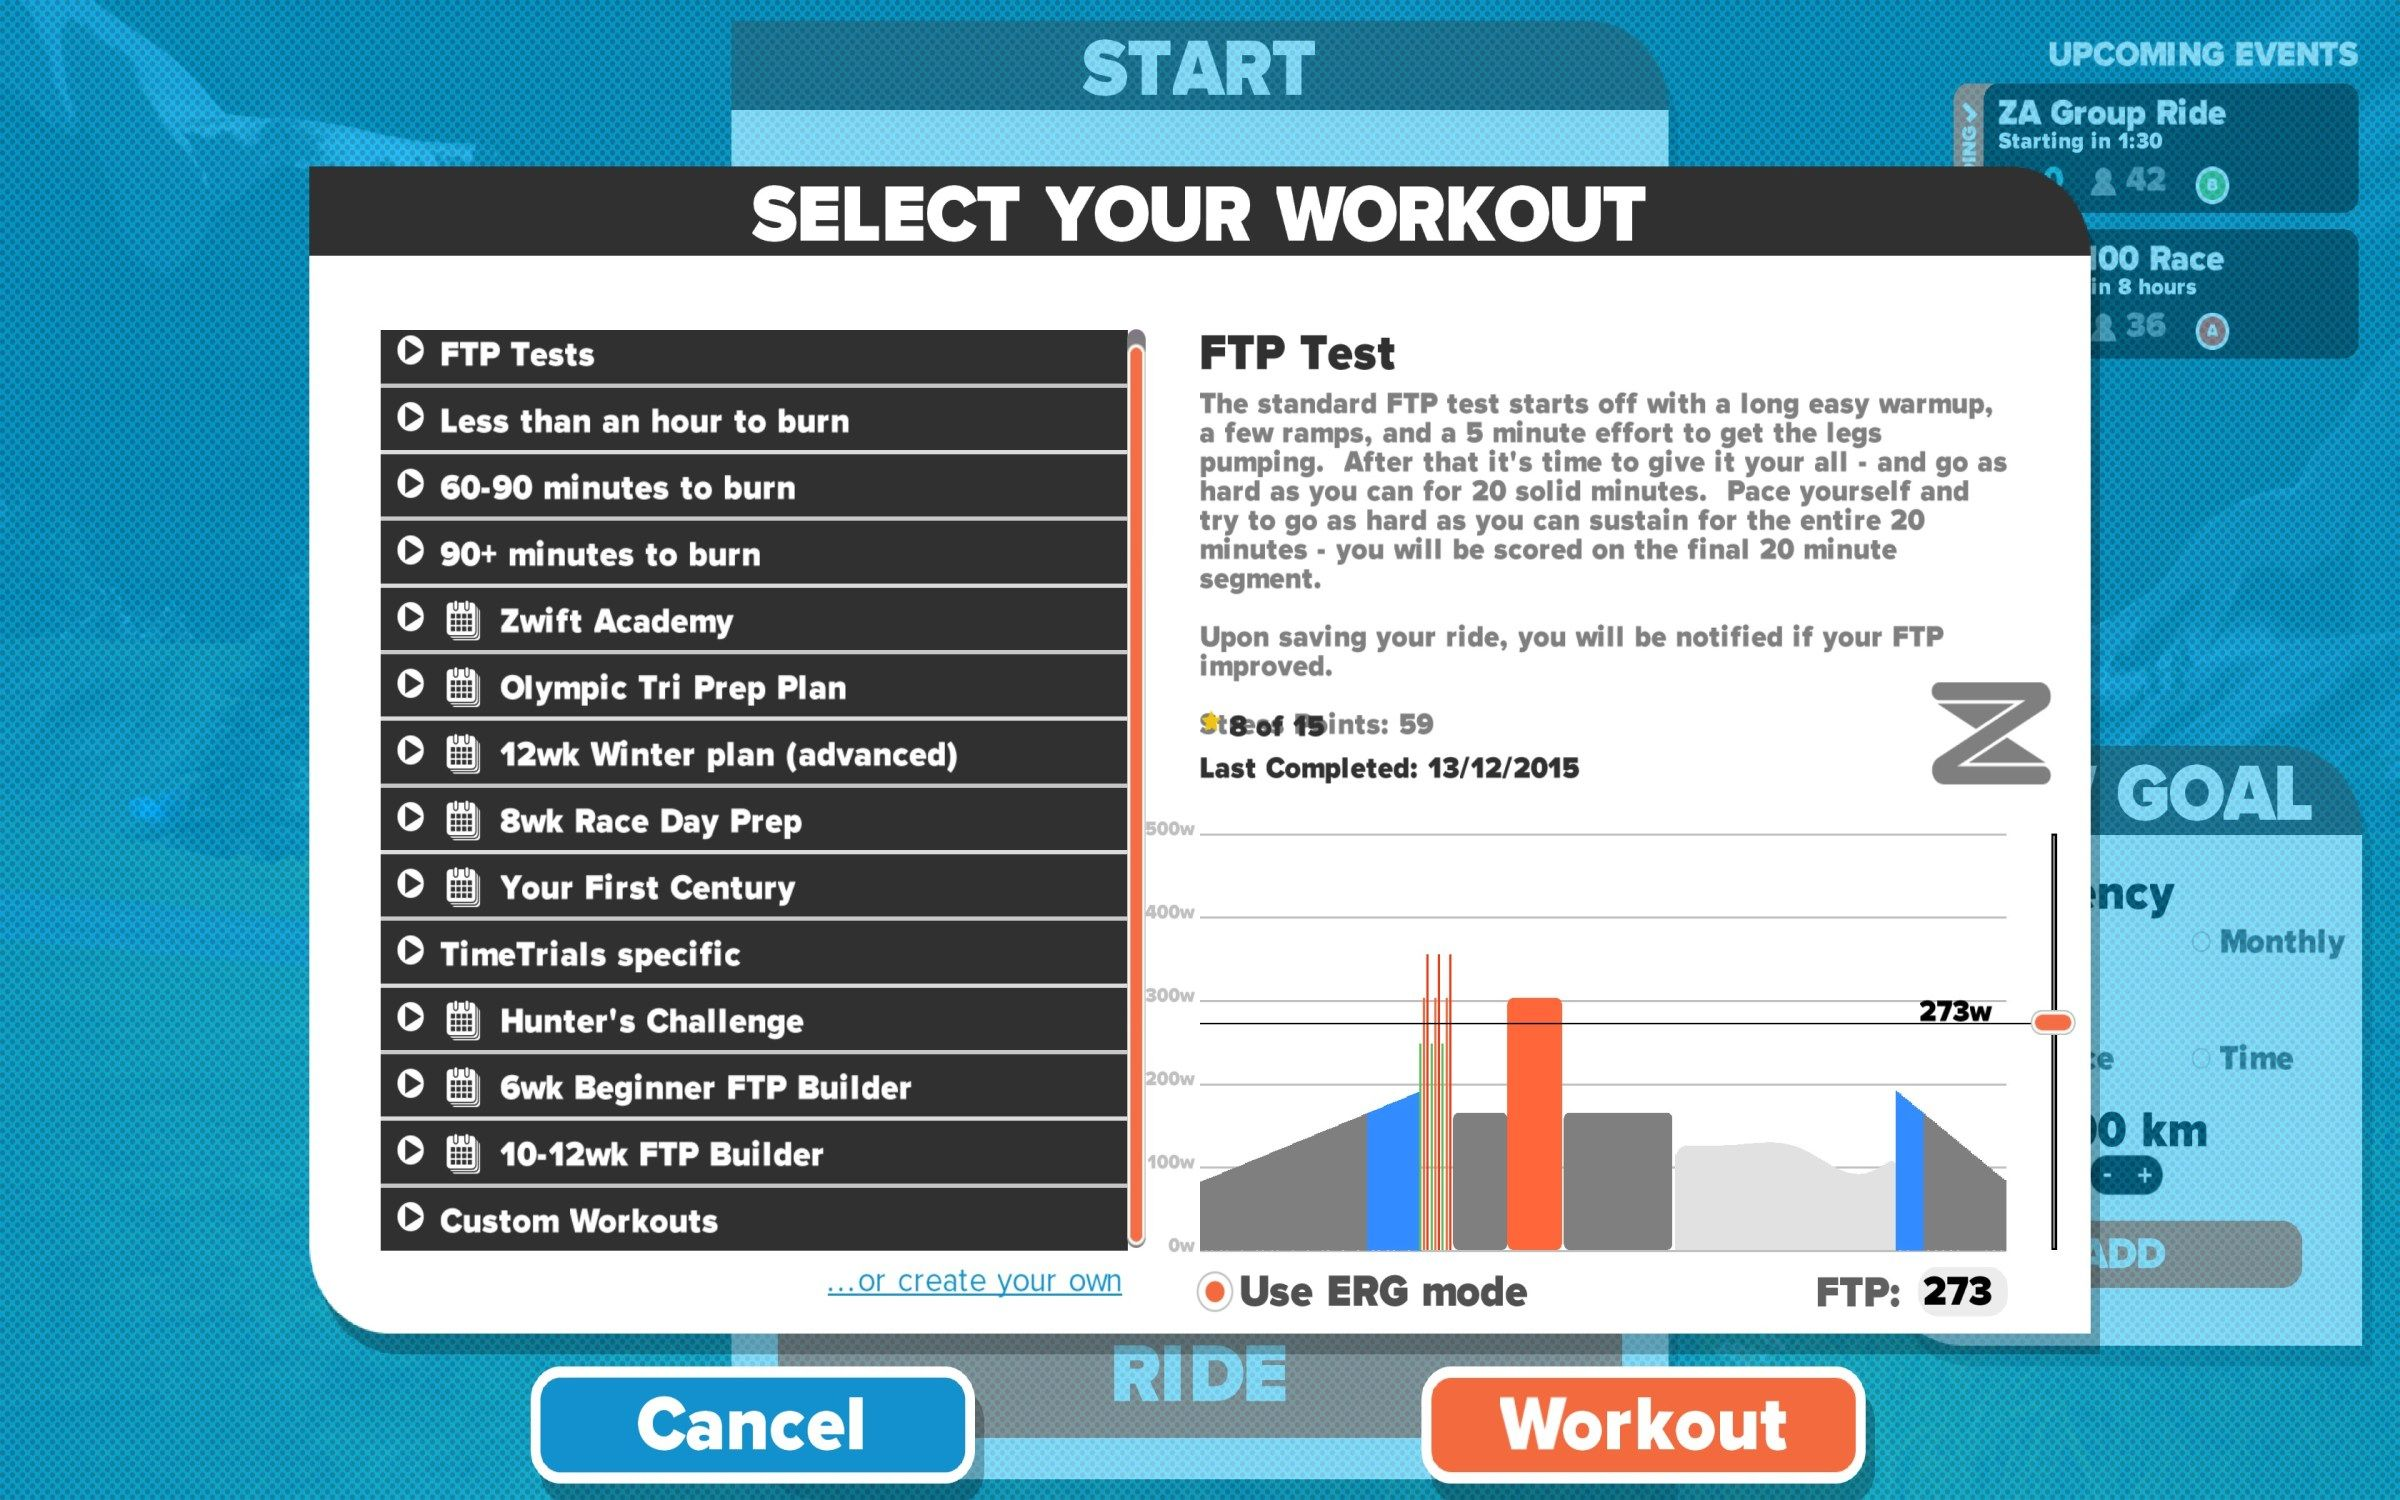 Zwift User Manual | mountainbike/bike | Manual, Diagram, Cycling